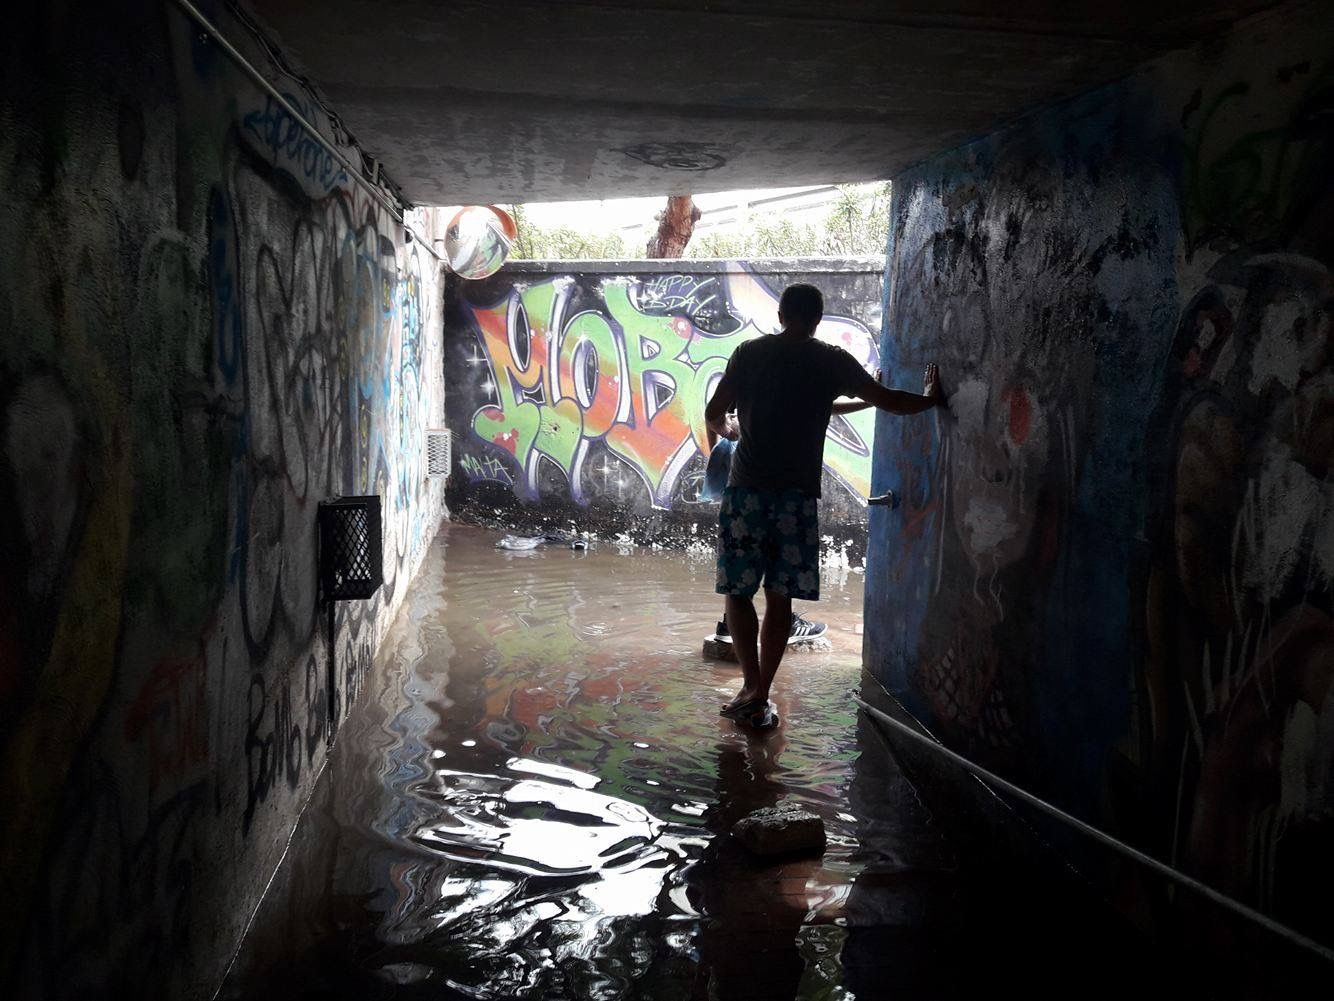 Subway connecting Swatar to University of Malta via skatepark after heavy rainfall